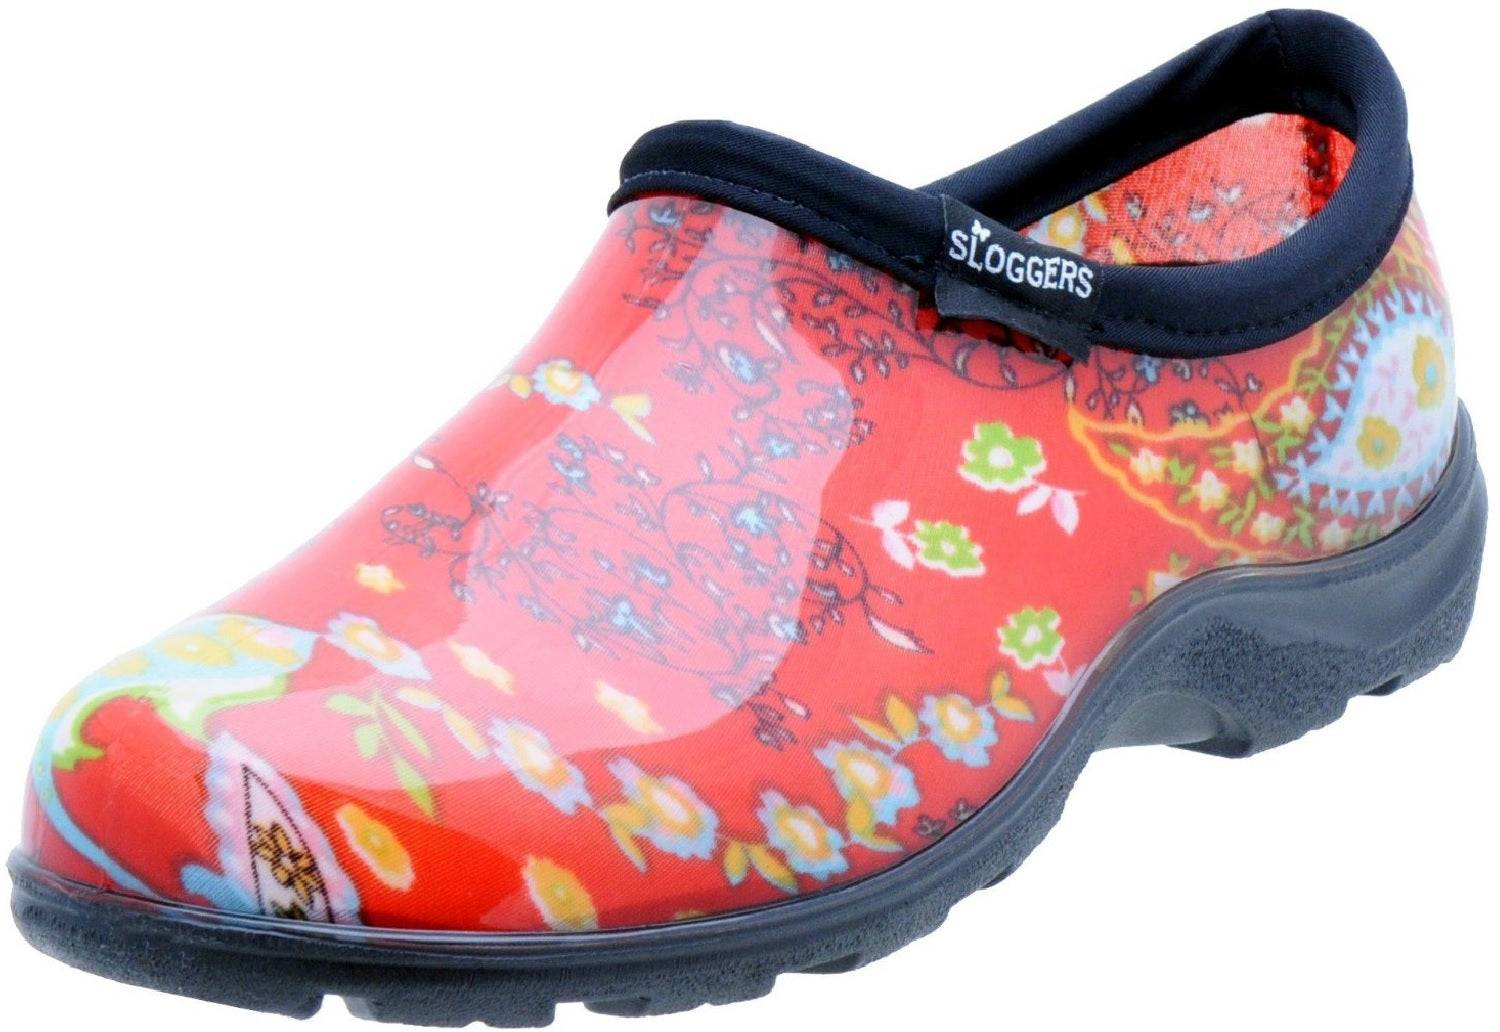 Sloggers 5104rd06 Women's Garden Shoes, Paisley Red, Size 6